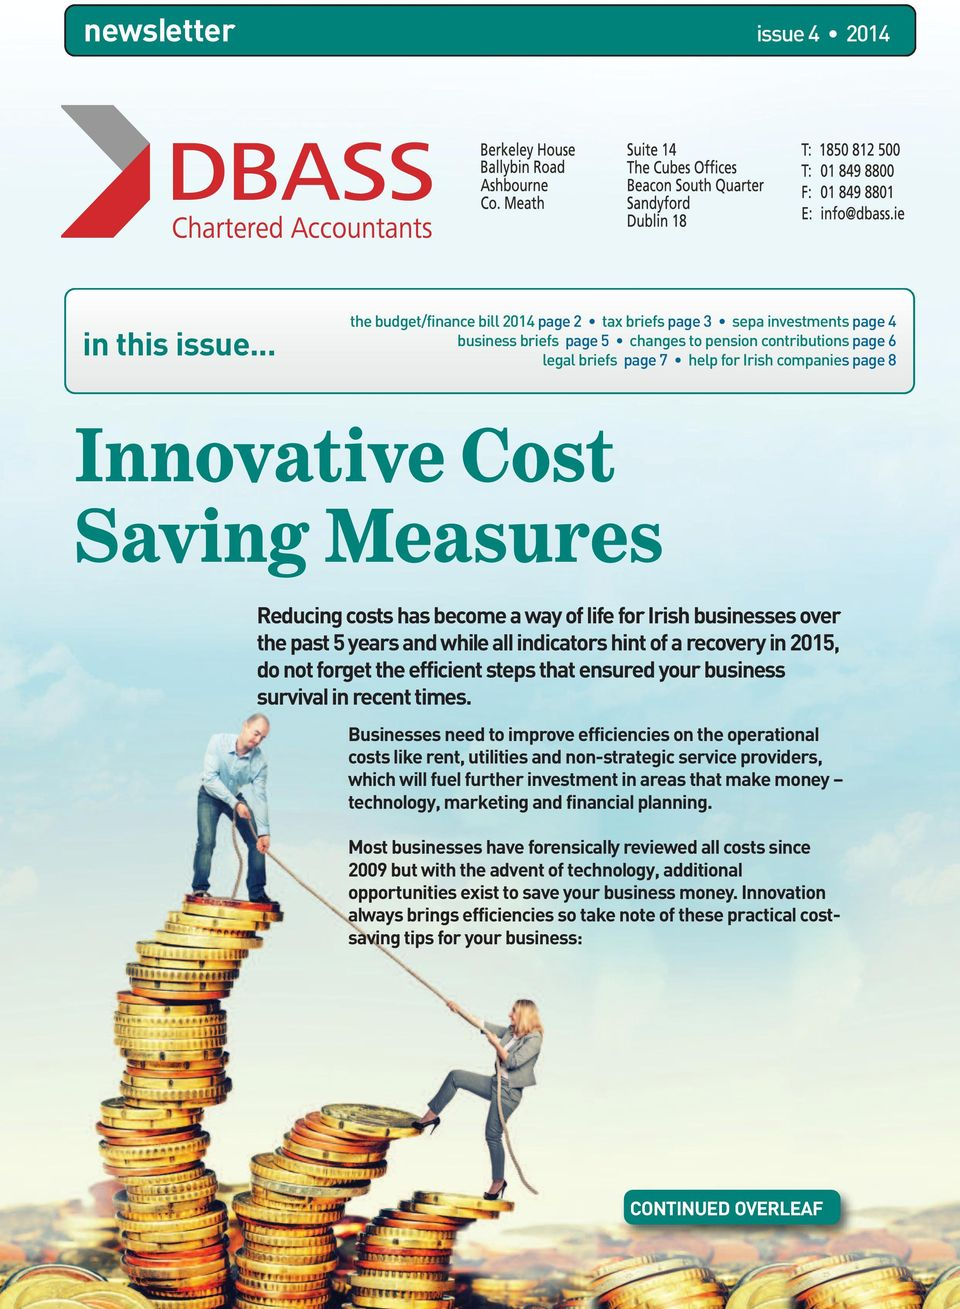 Innovative Cost Saving Measures ReducingcostshasbecomeawayoflifeforIrishbusinessesover thepast5yearsandwhileallindicatorshintofarecoveryin2015, do not forget the efficient steps that ensured your